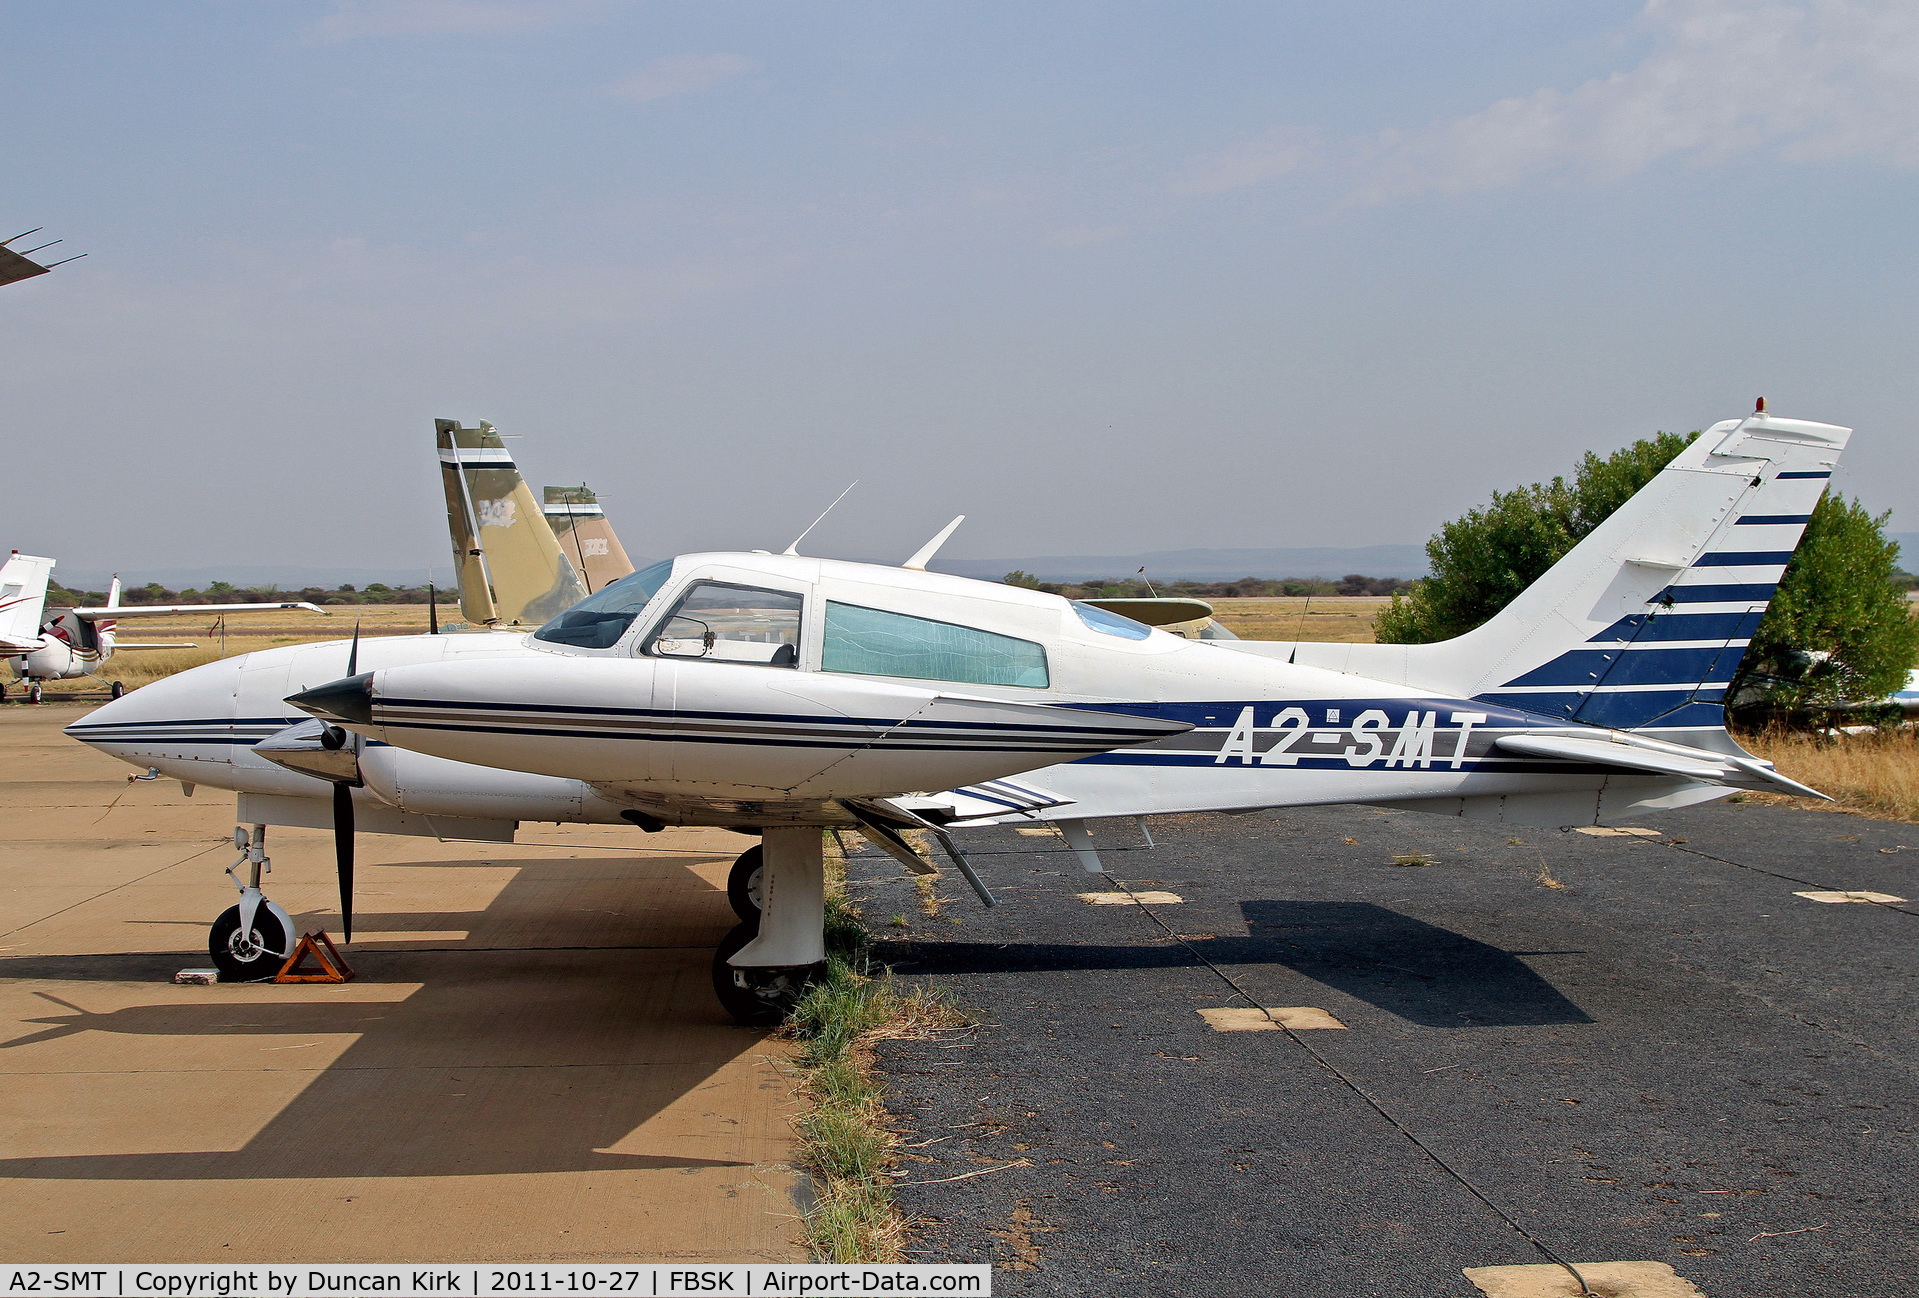 A2-SMT, Cessna 310R C/N 310R1870, Nice 310 at Gaborone